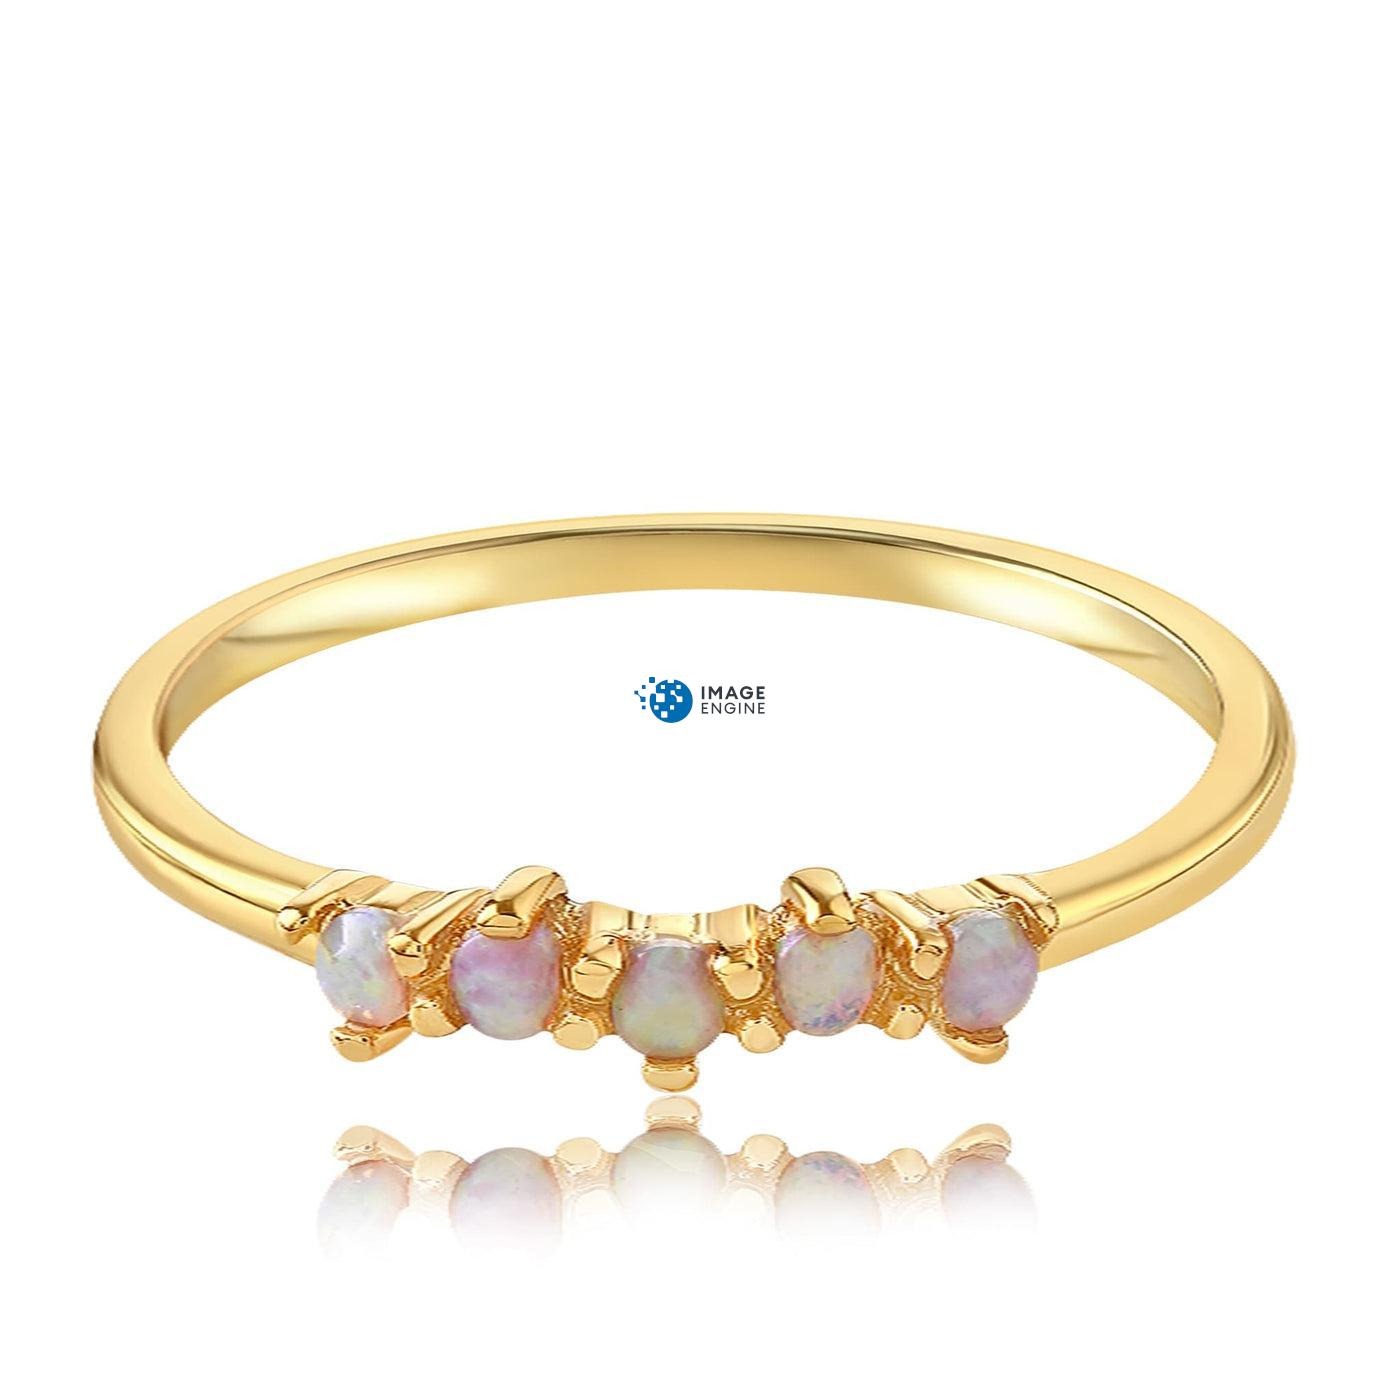 Samantha Simple Dots 5 Opal Ring - Front View Facing Down - 18K Yellow Gold Vermeil